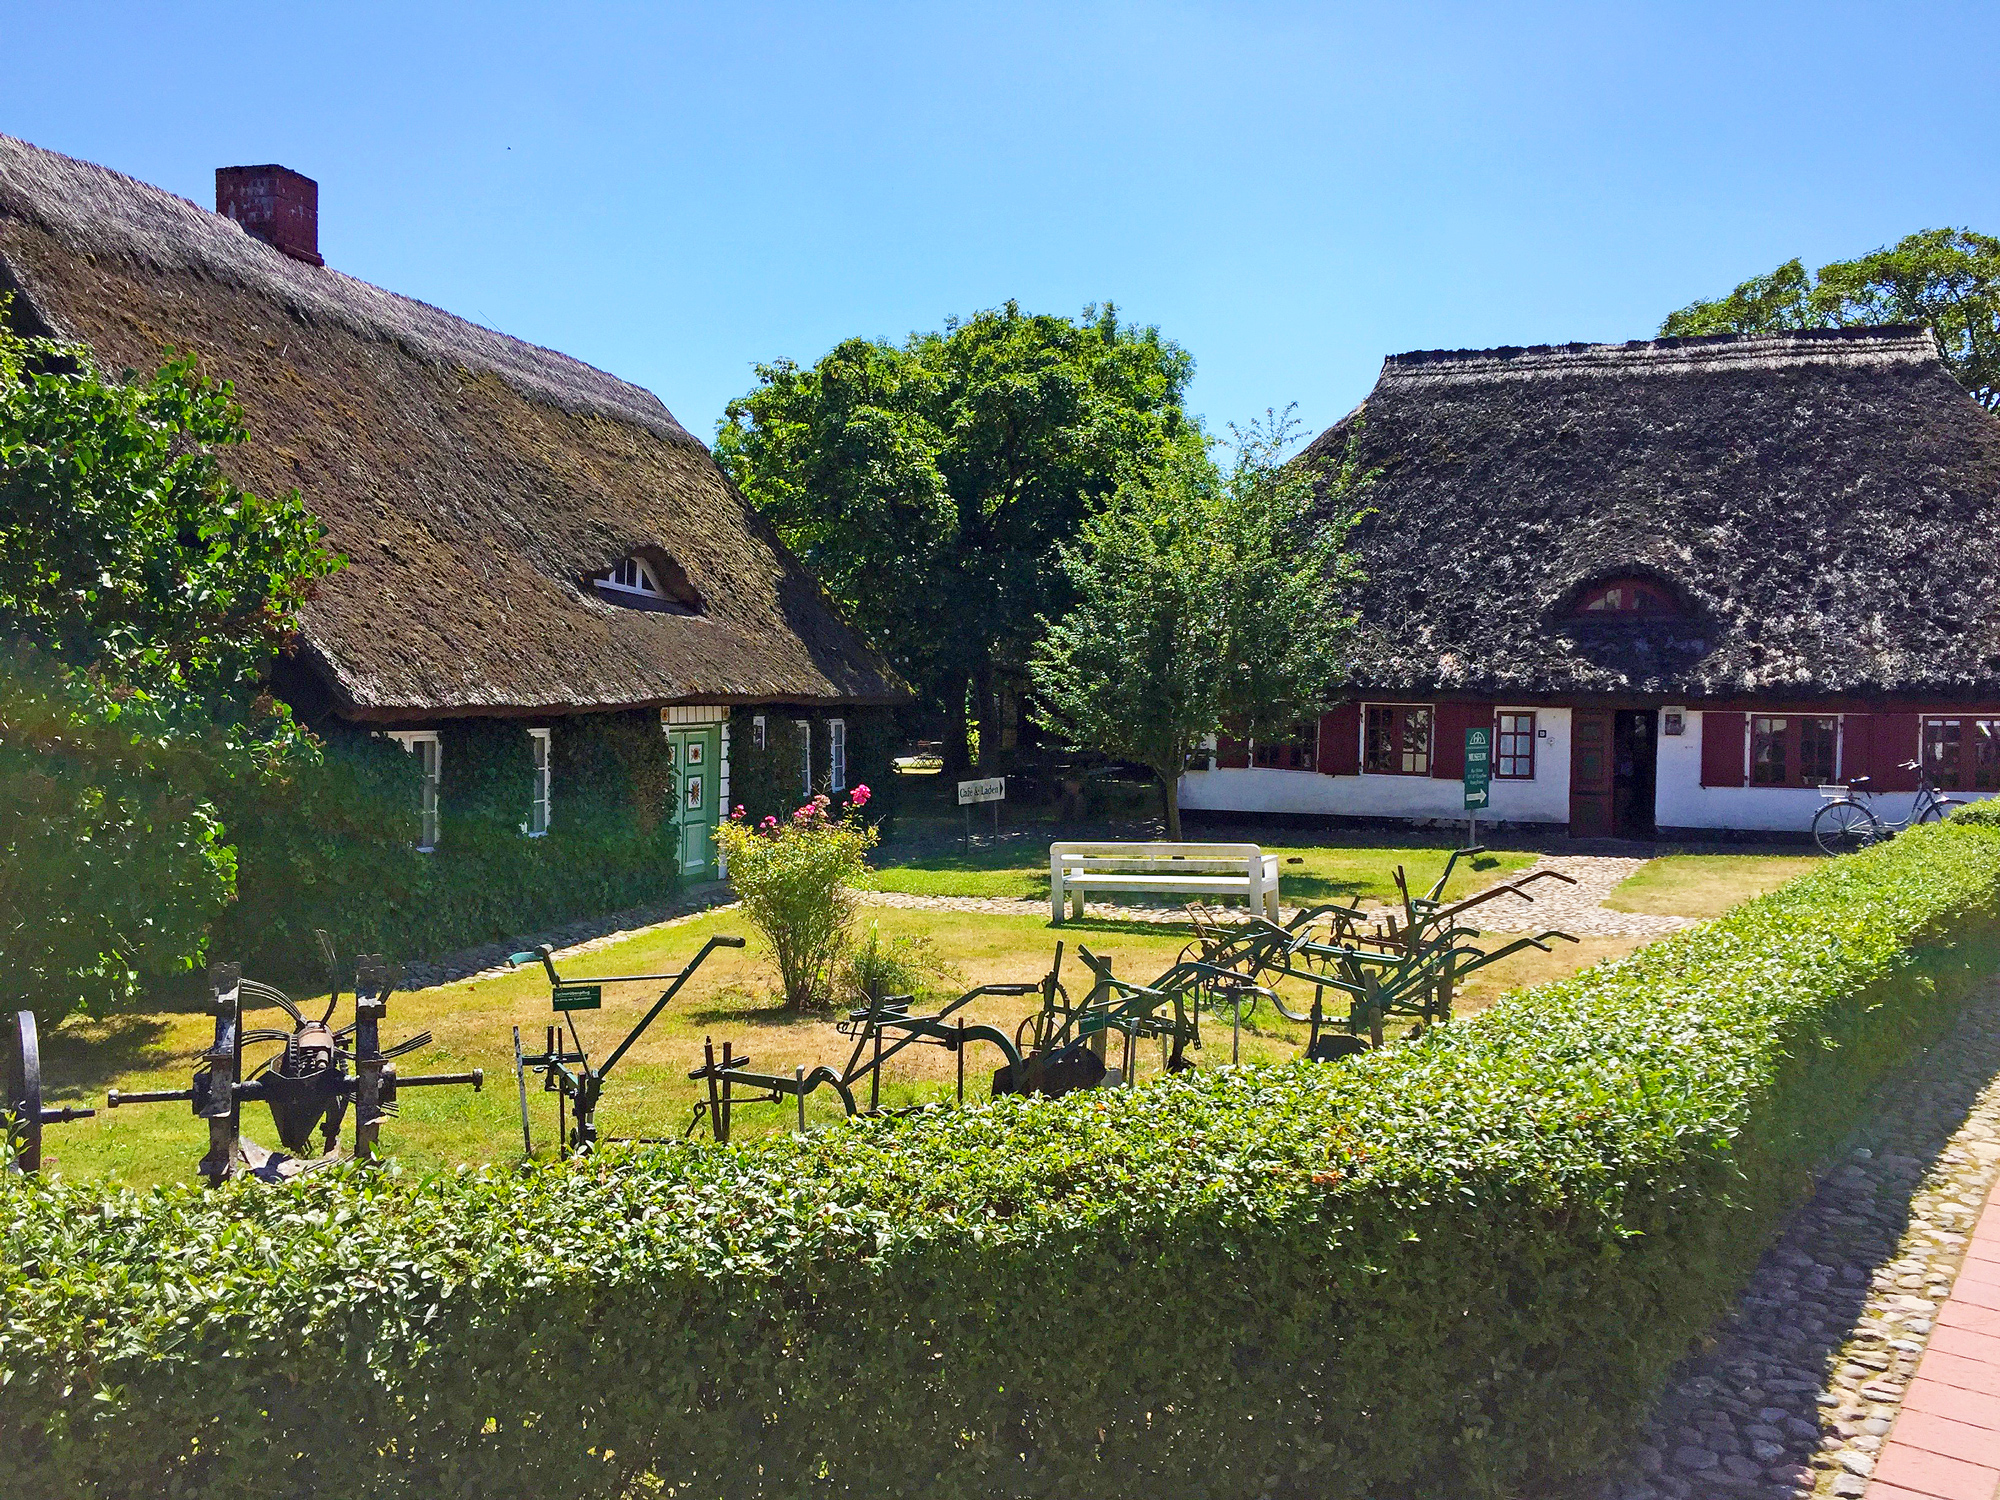 Gingst Museum